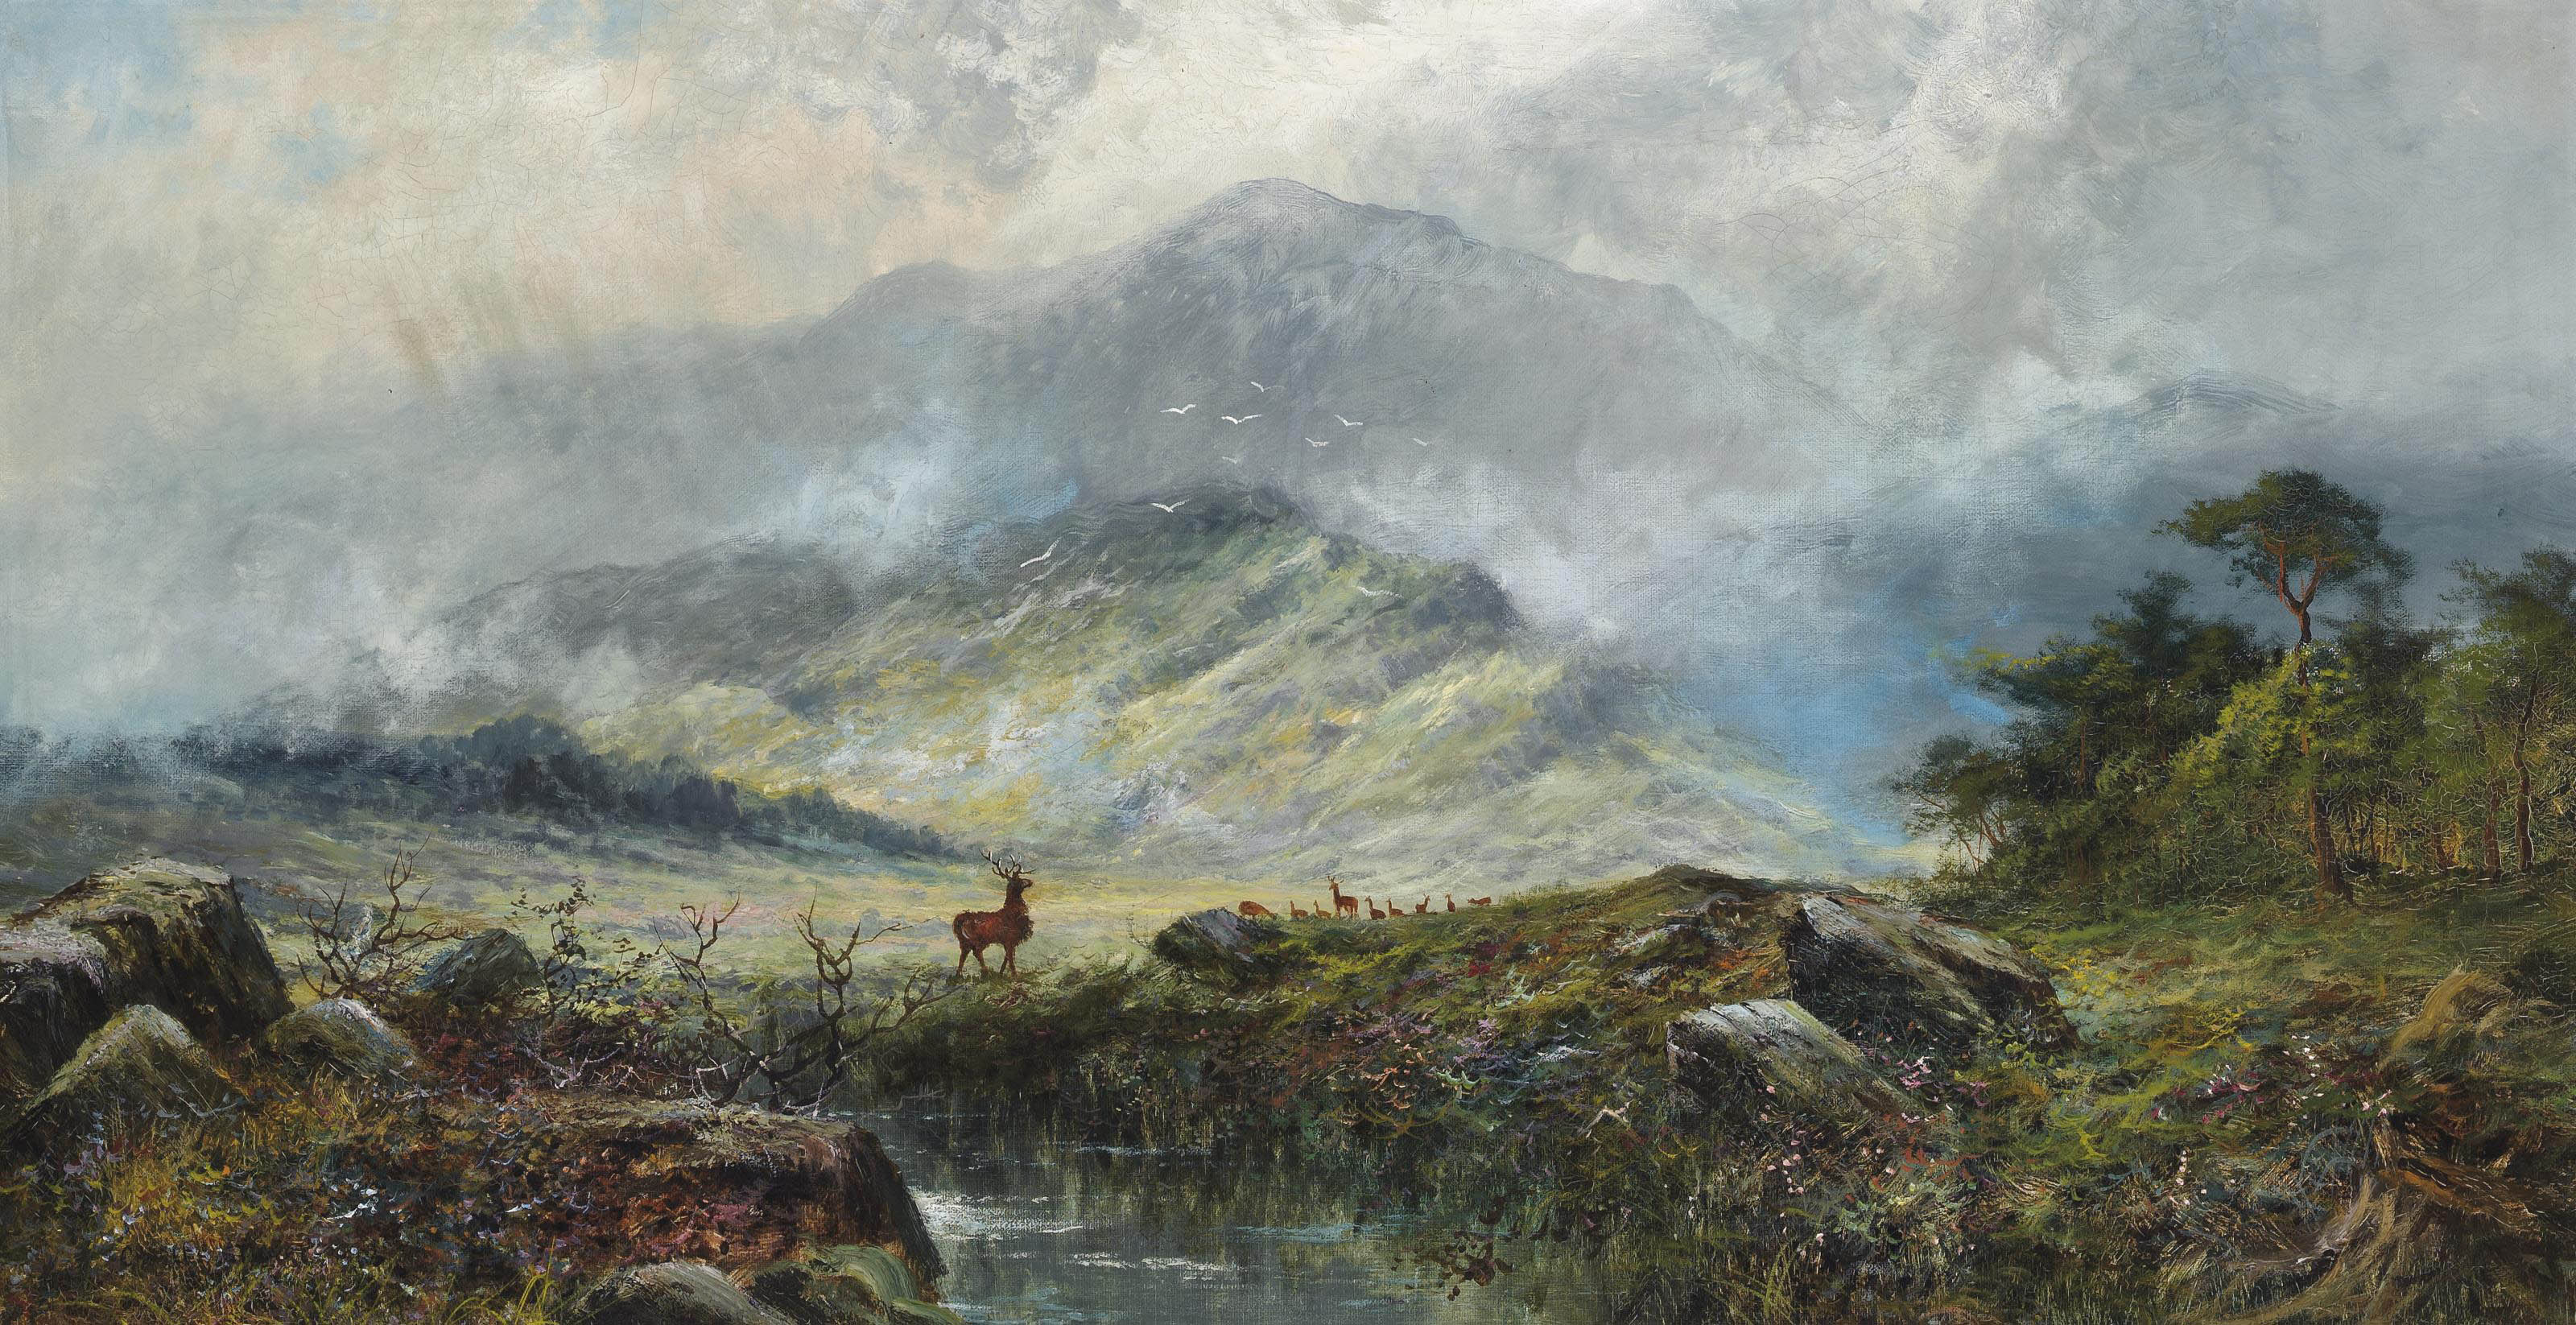 Stags in a misty highland landscape